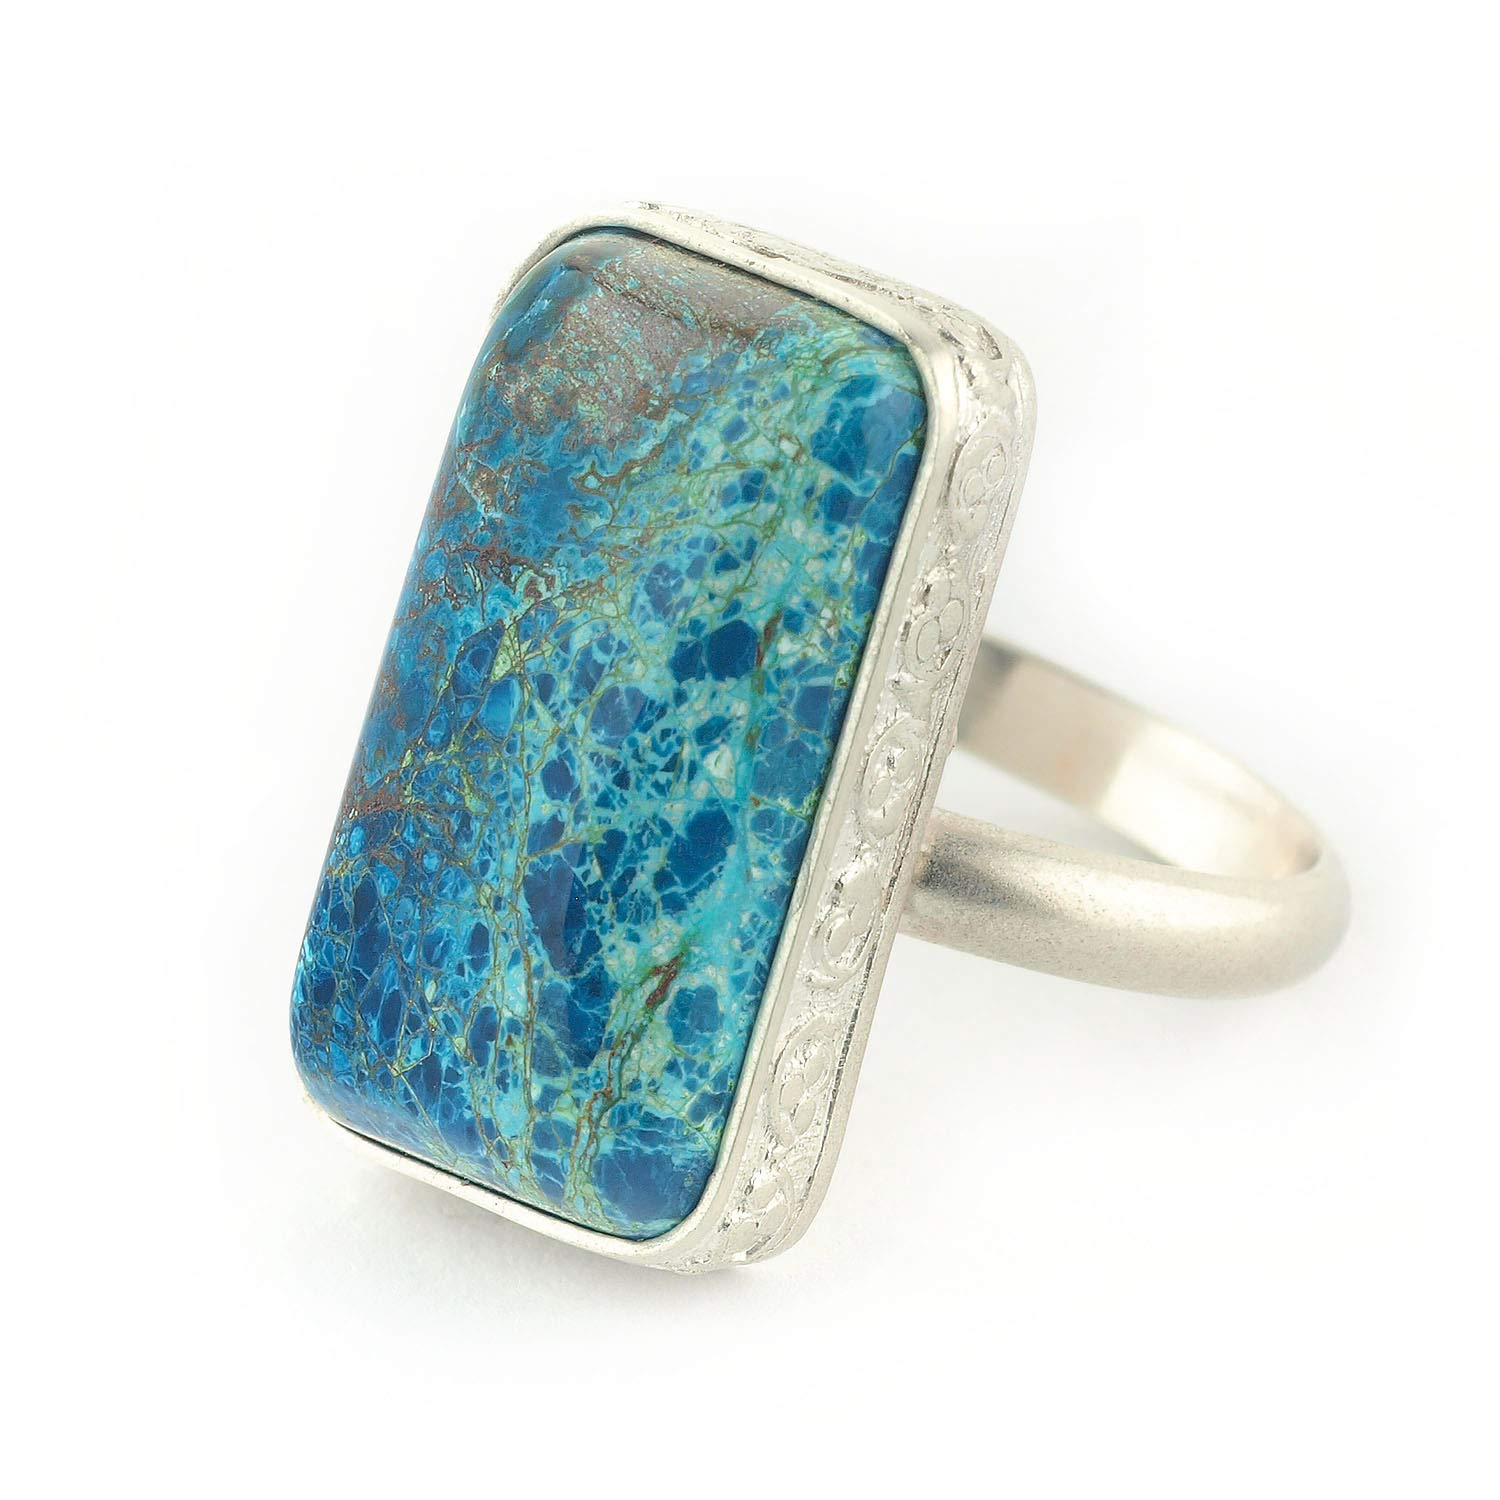 N 925 STERLING SILVER HANDMADE SOLID  RING  SIZE UK